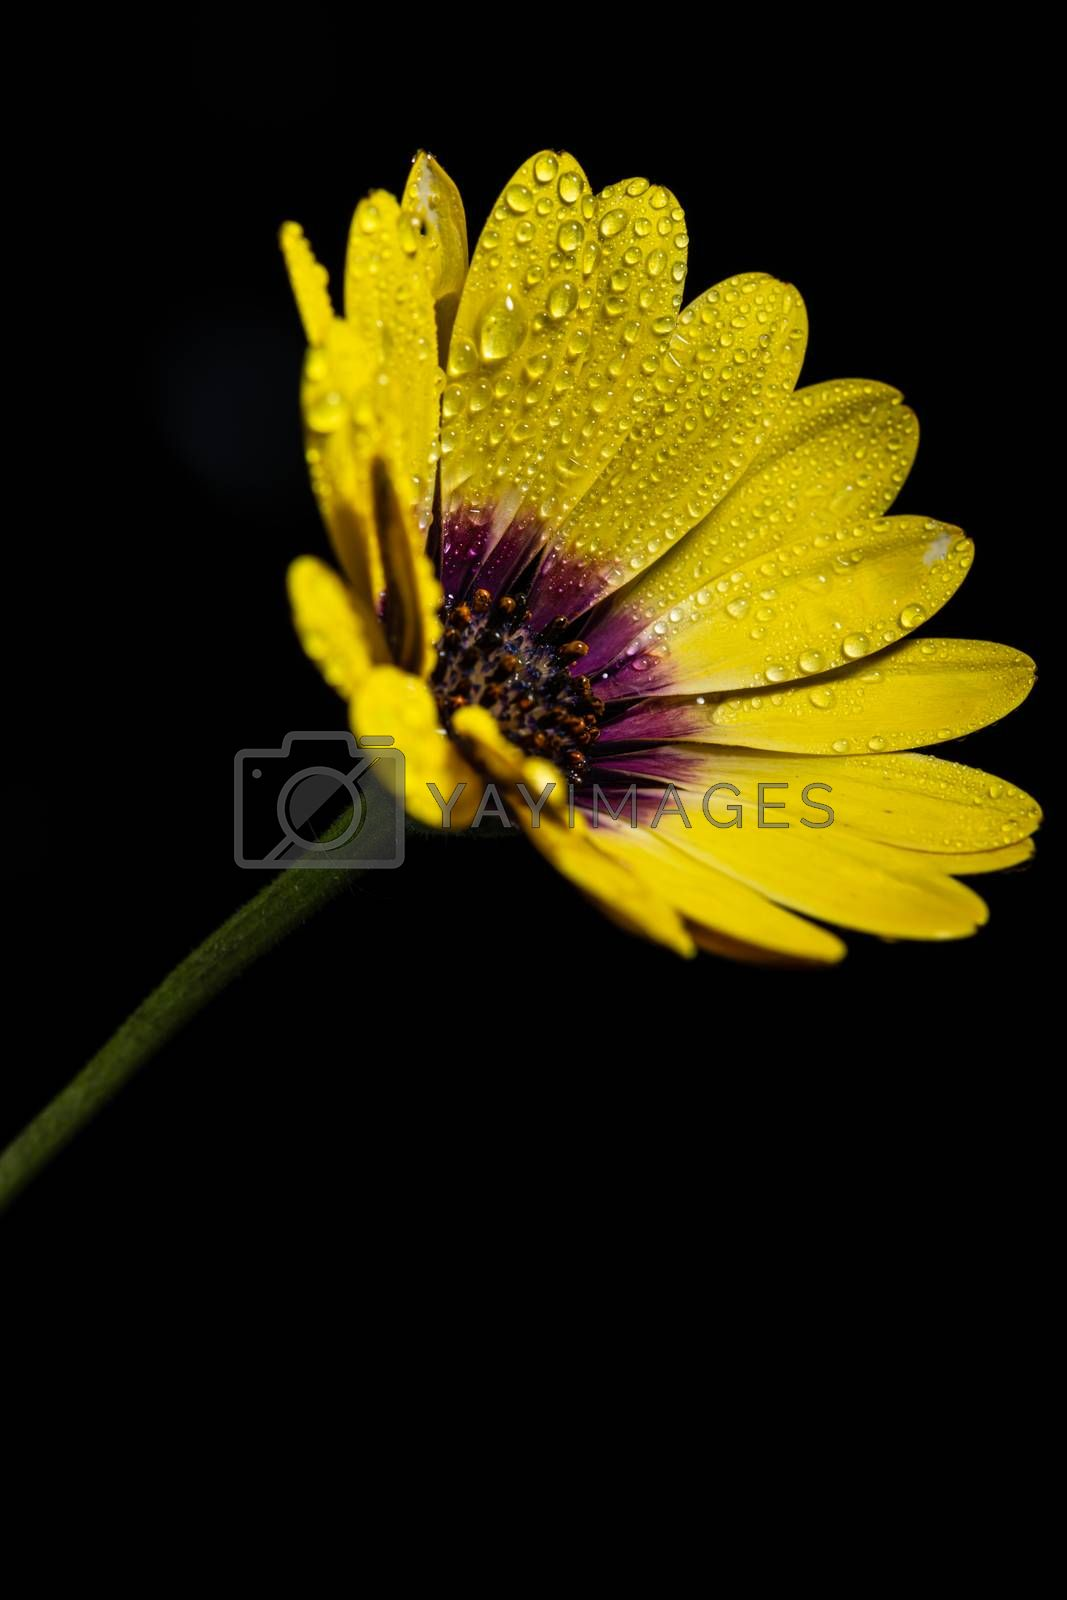 single yellow Daisy flower isolated on a black background